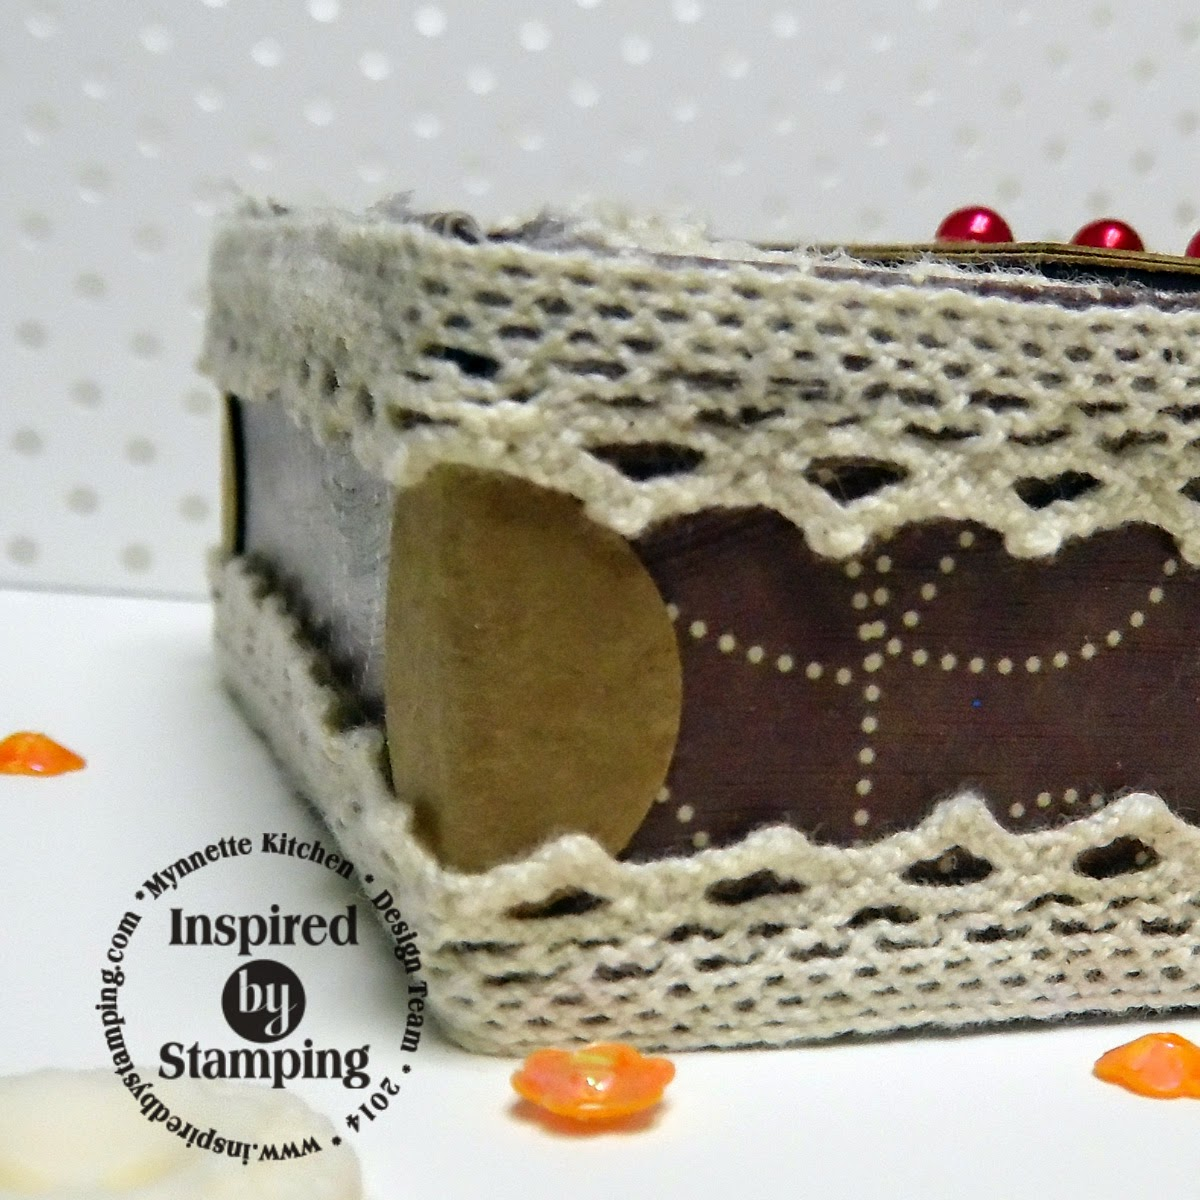 Inspired by Stamping, Mynnette Kitchen, Autumn Blessings stamp set, gift box, Autumn box